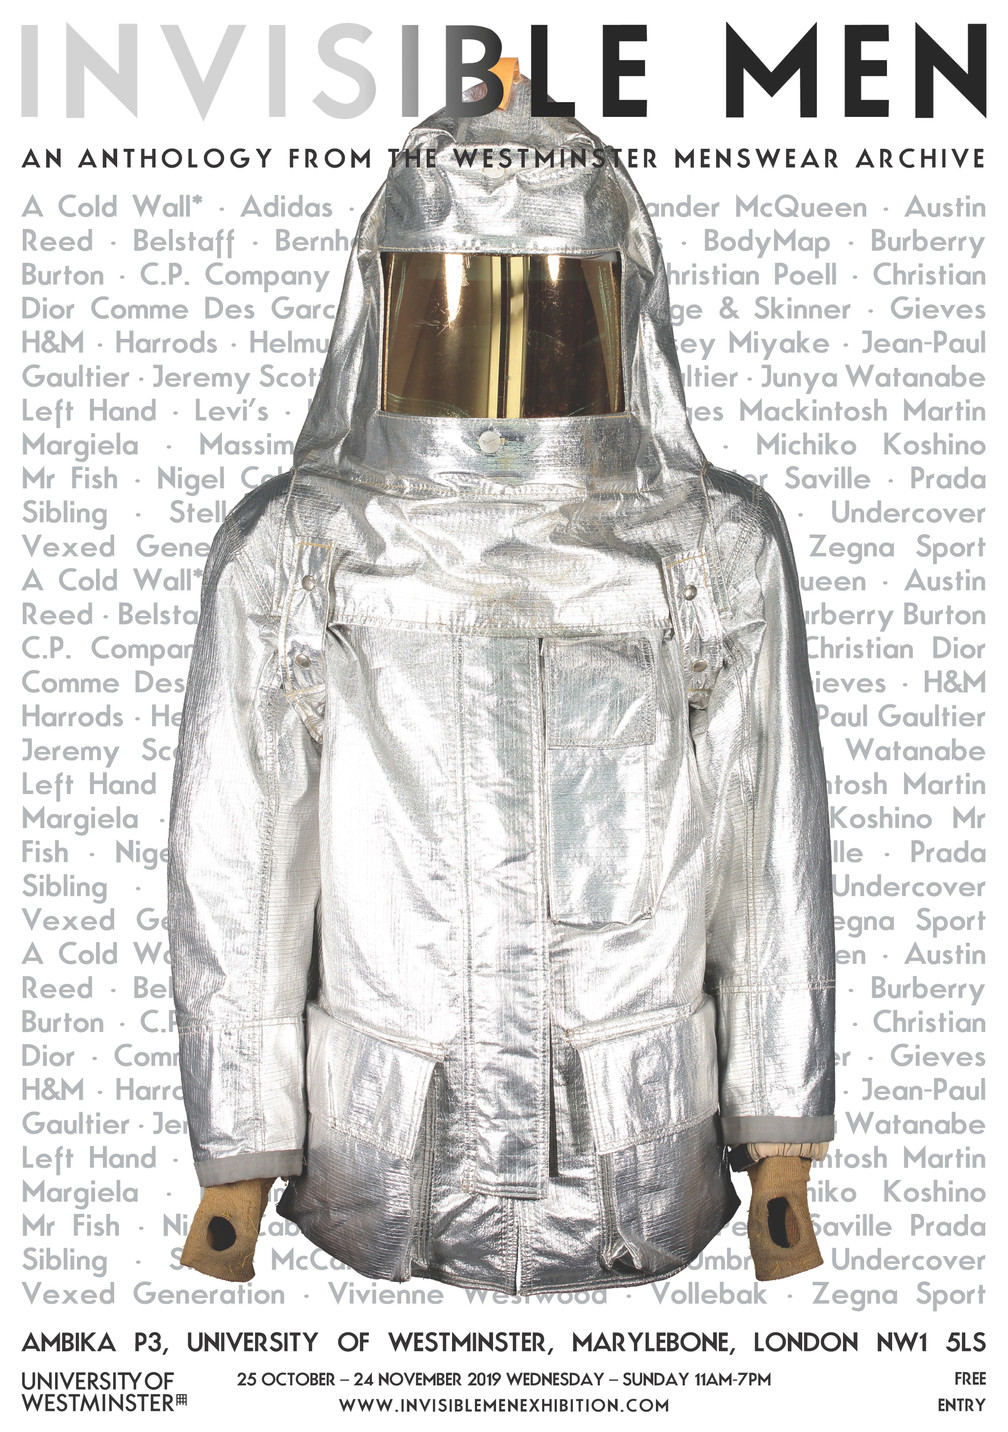 Westminster Menswear Archive announces Invisible Men exhibition, the largest exhibition of menswear